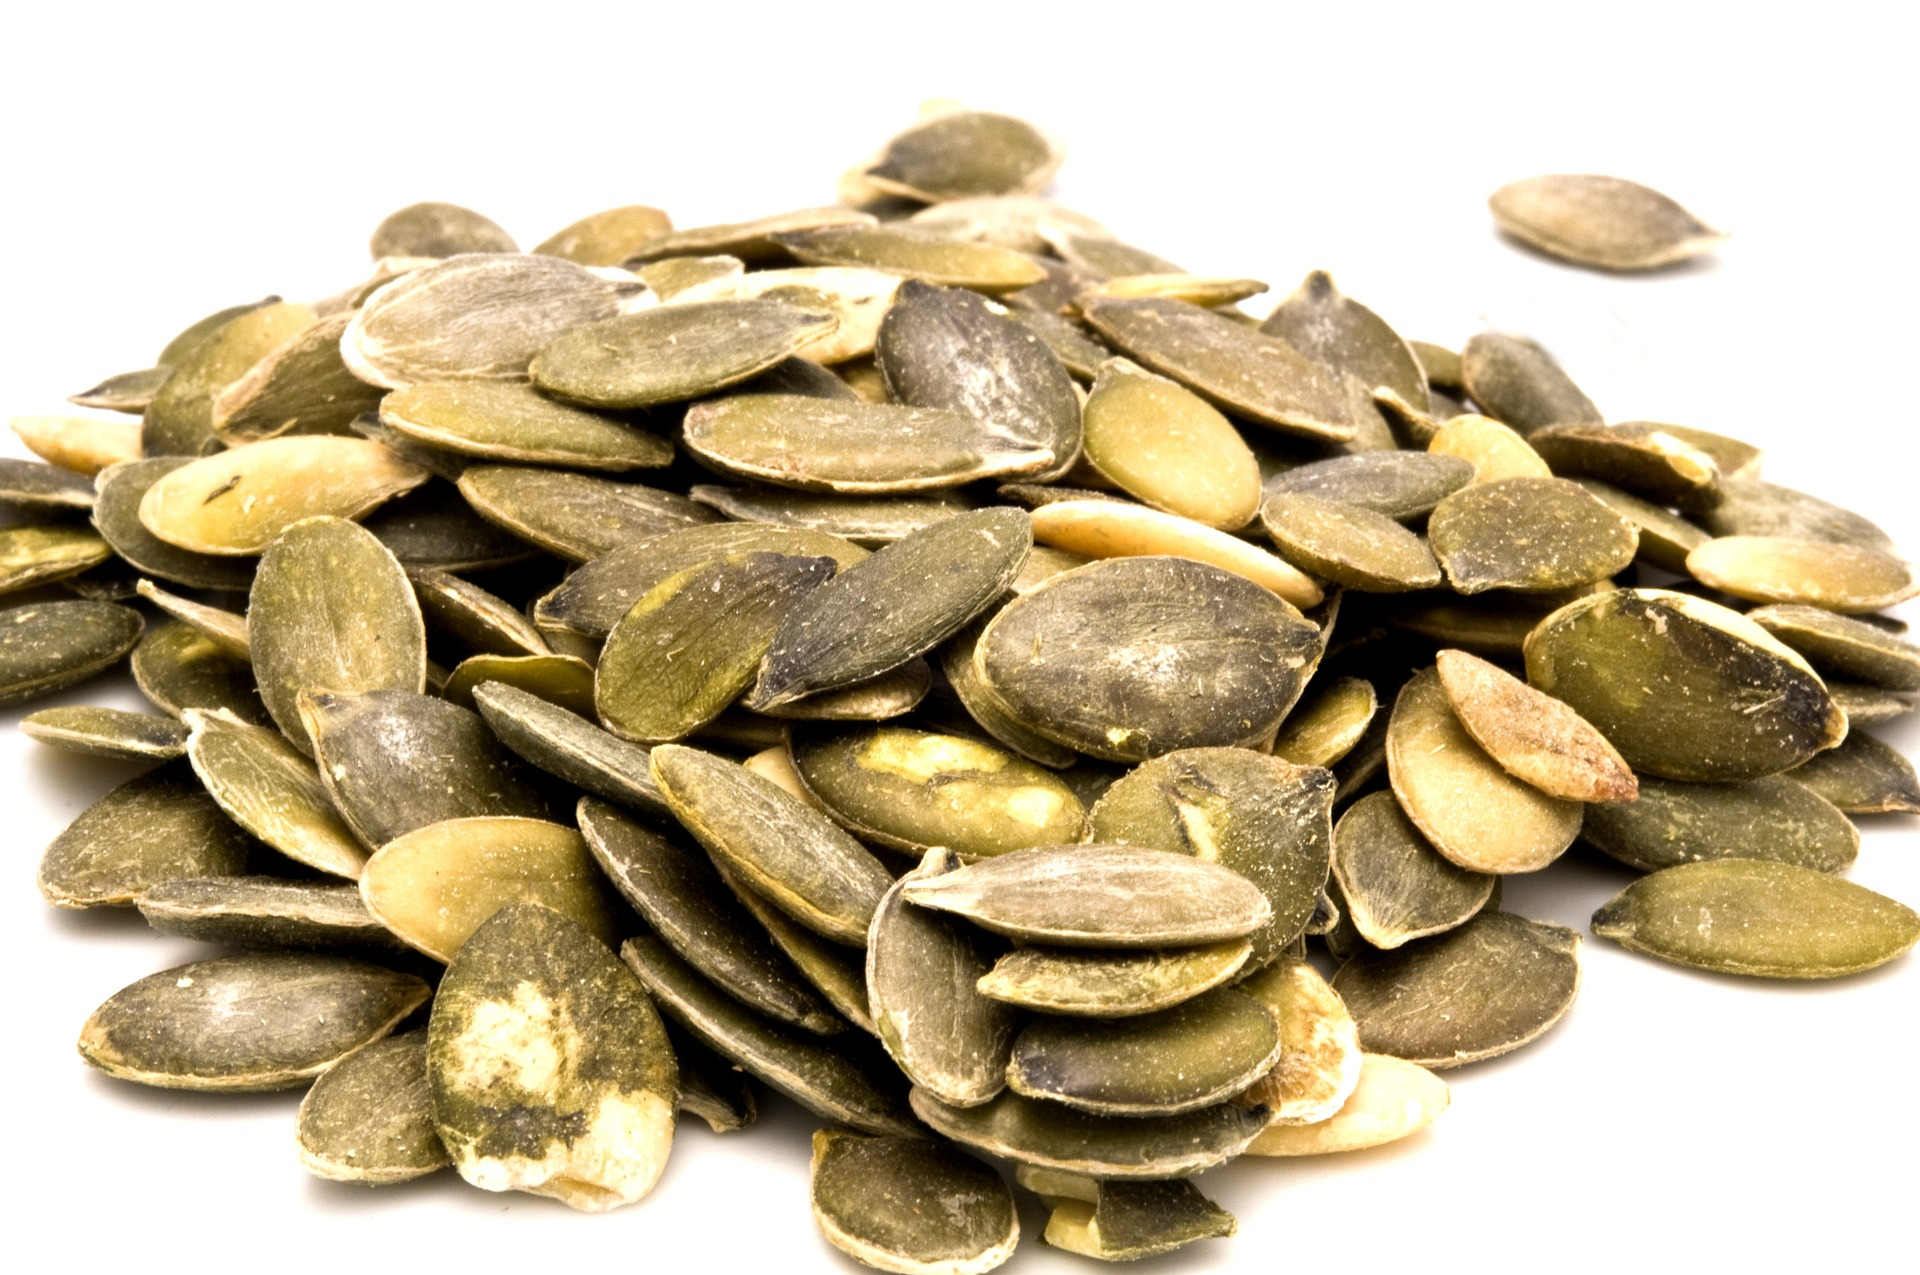 pumpkin-seeds-1326476_1920.jpg